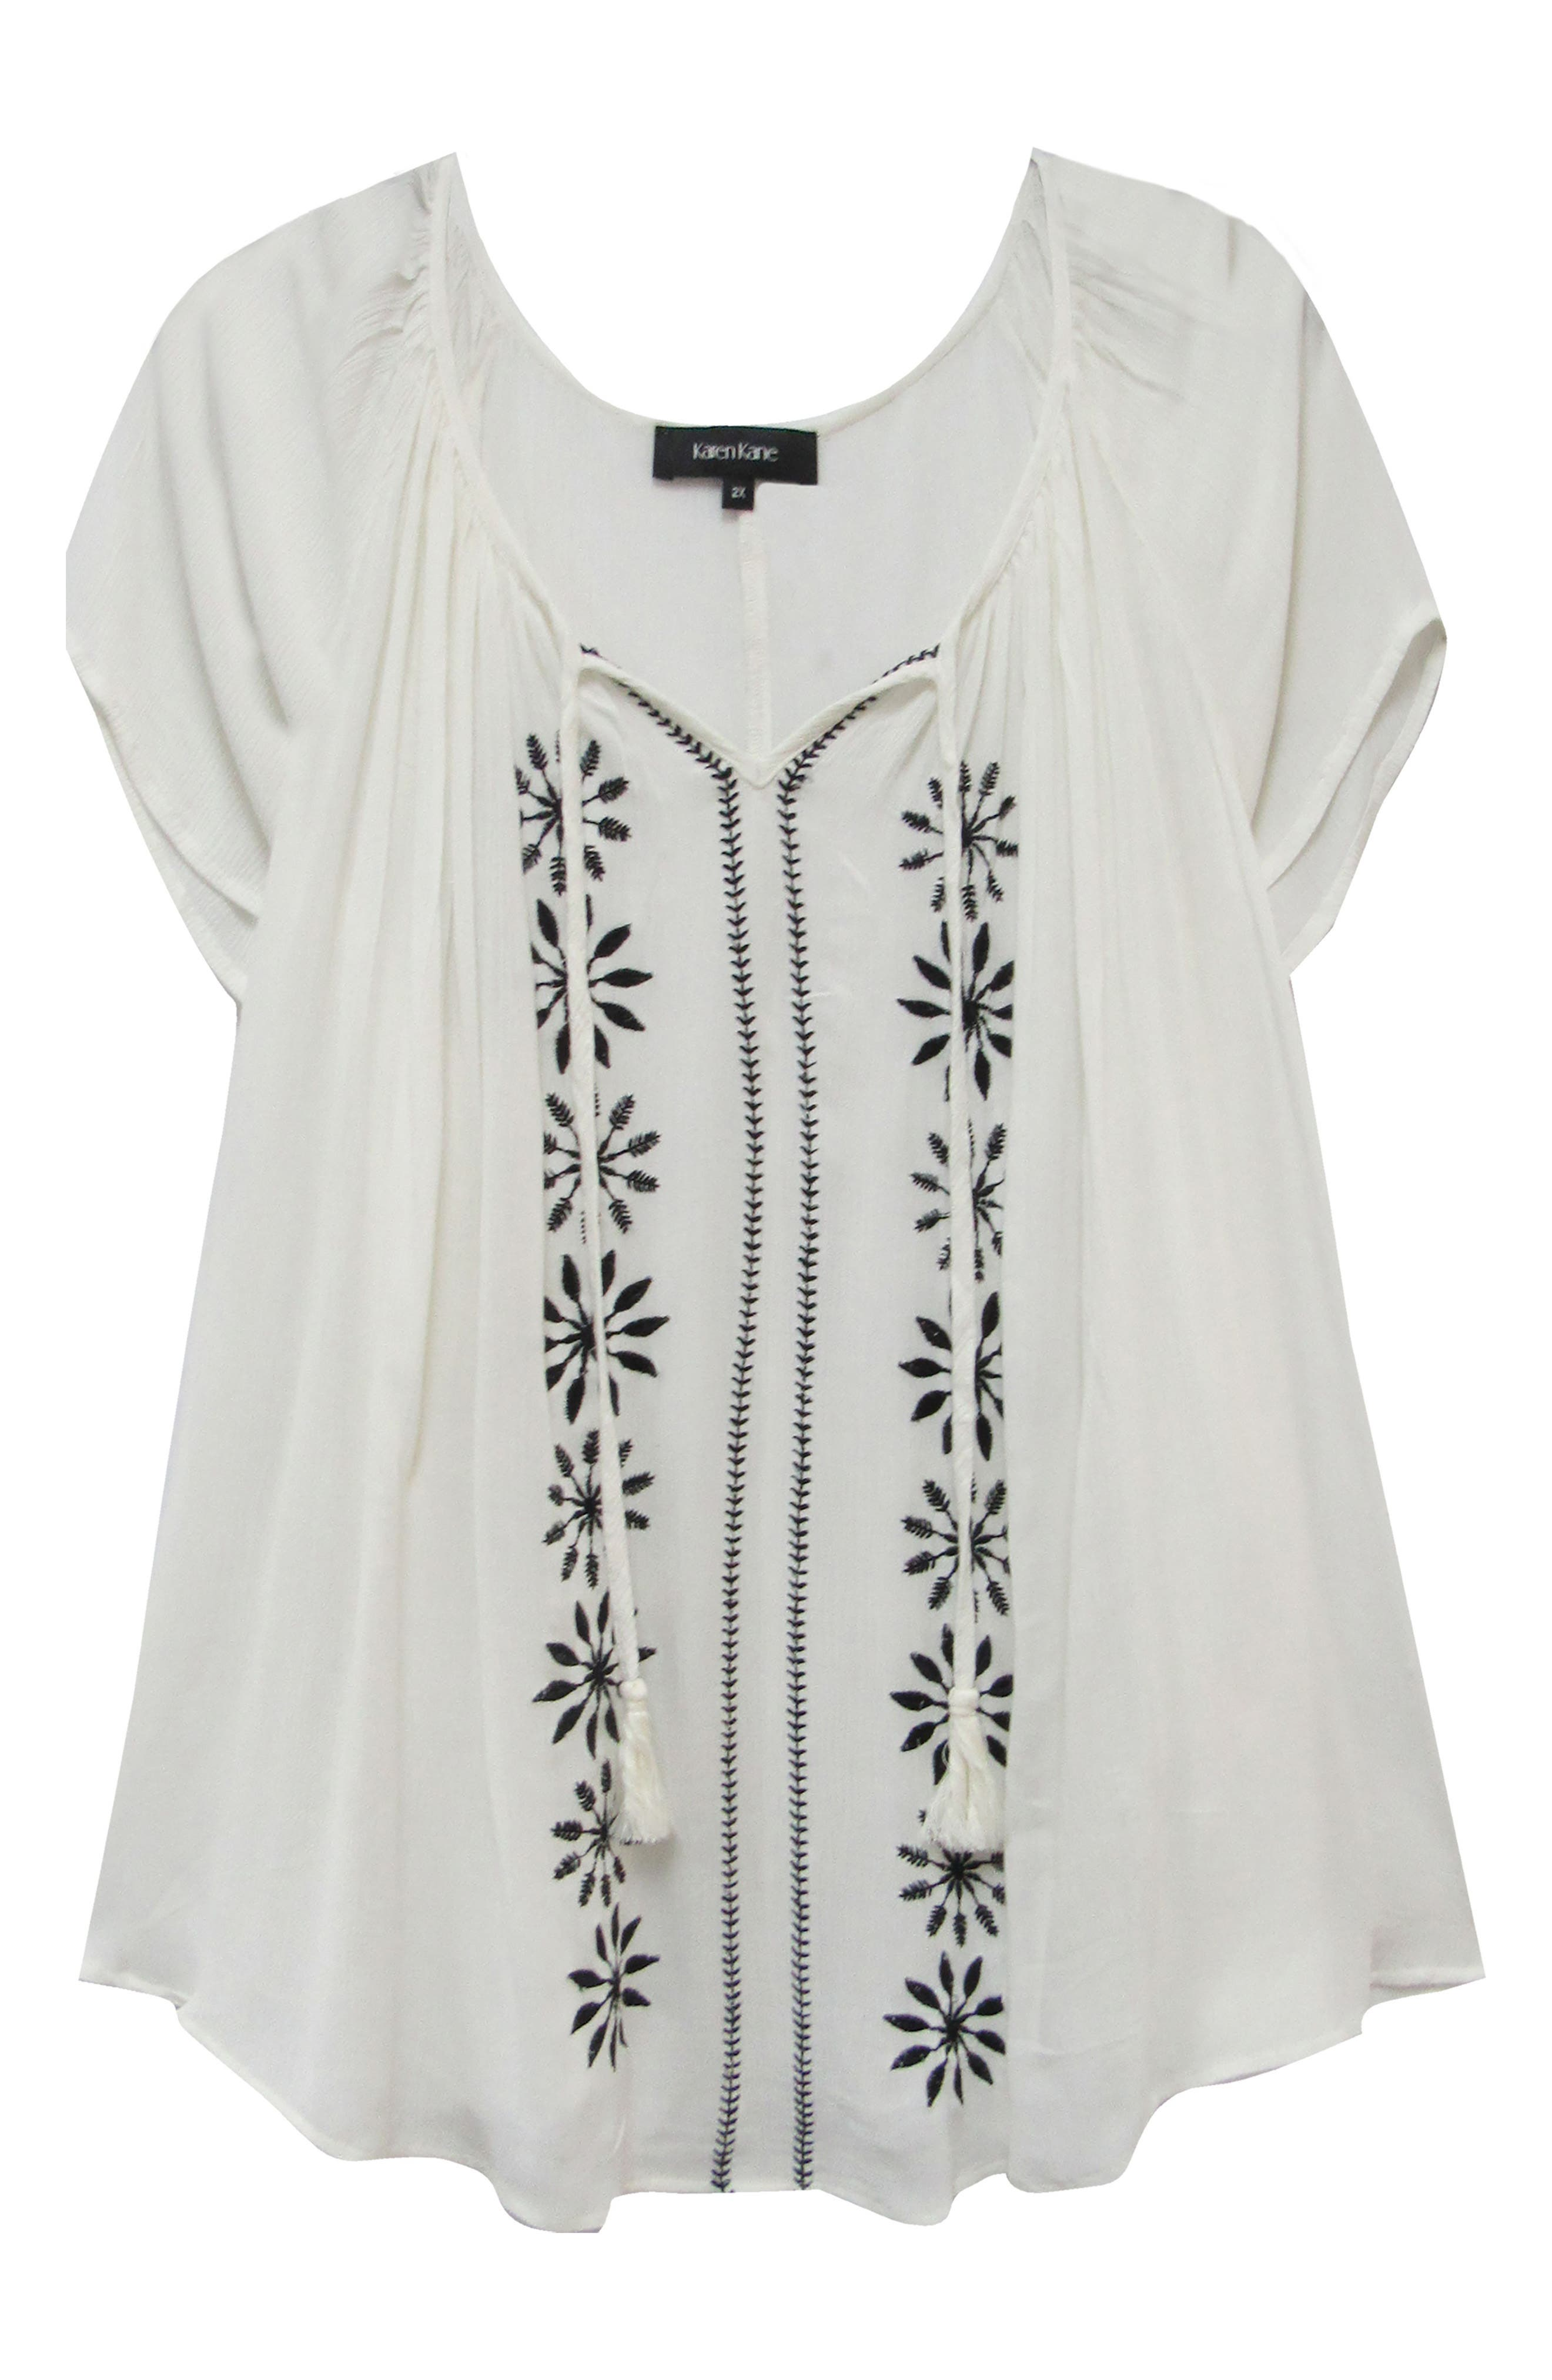 KAREN KANE, Embroidered Peasant Top, Alternate thumbnail 3, color, OFF WHITE WITH BLACK